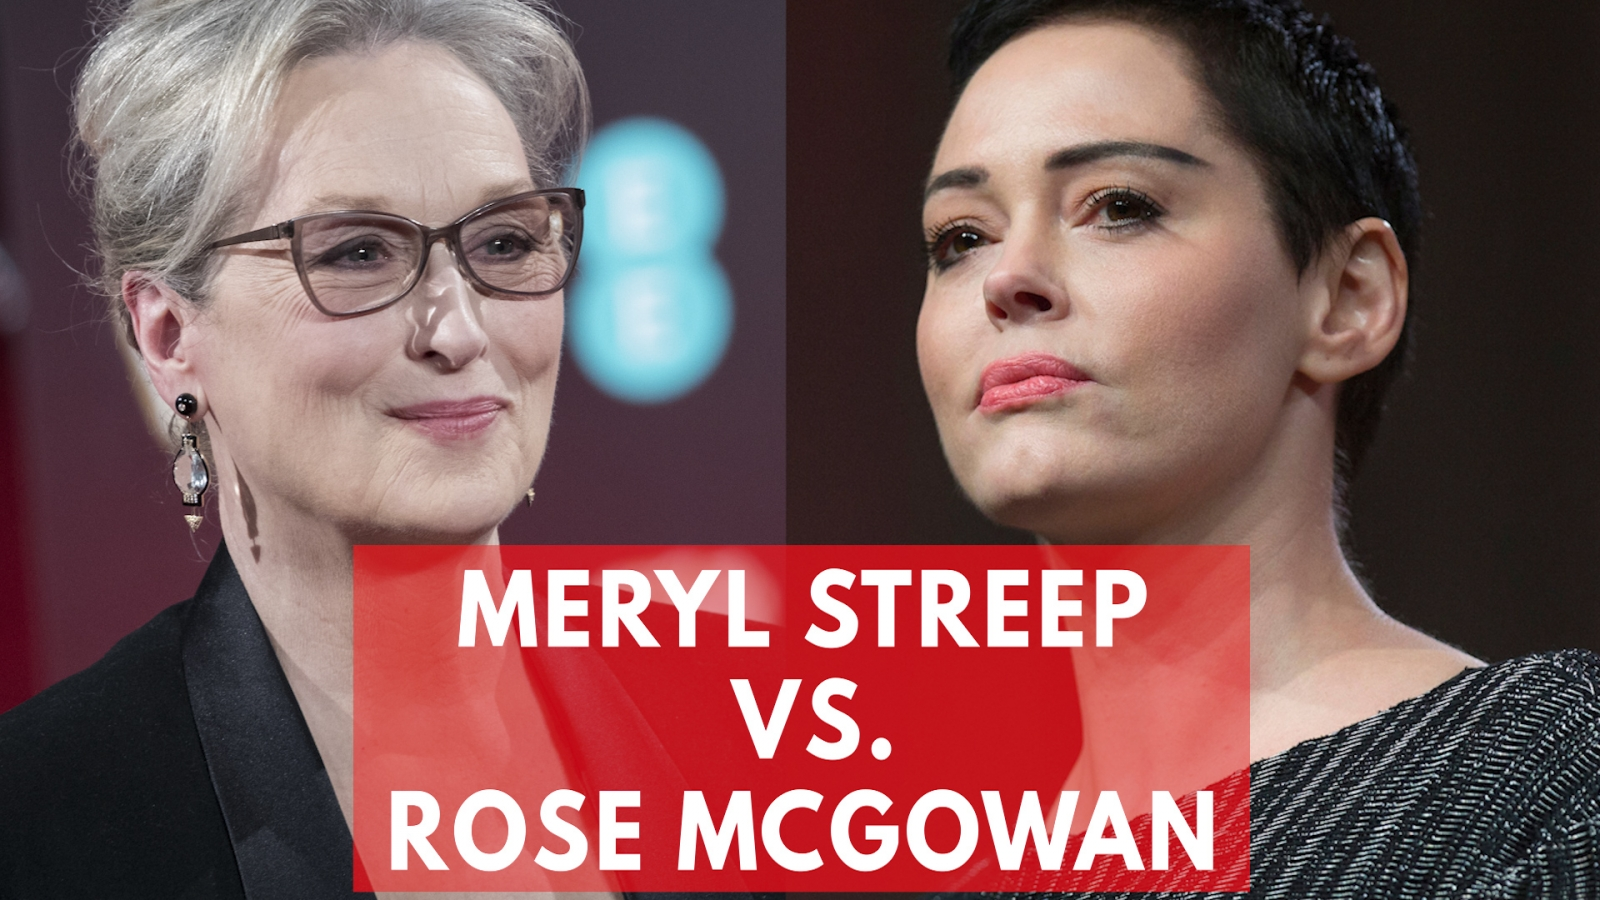 meryl-streep-responds-to-rose-mcgowan-accusations